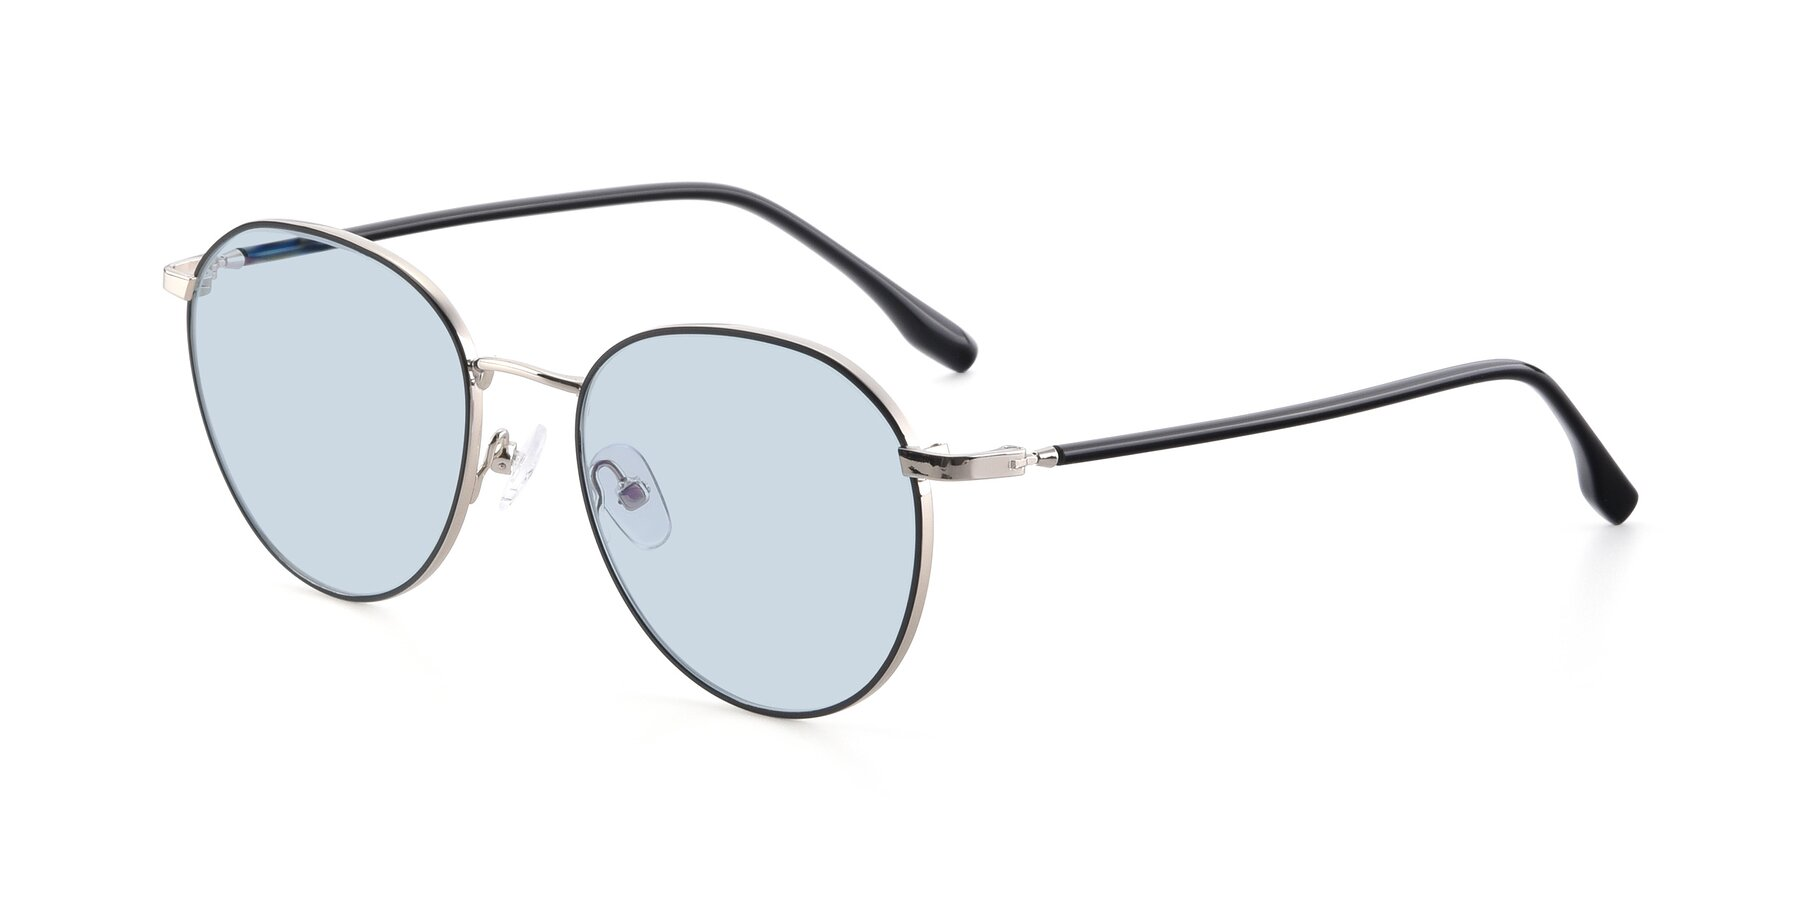 Angle of 9553 in Black-Silver with Light Blue Tinted Lenses